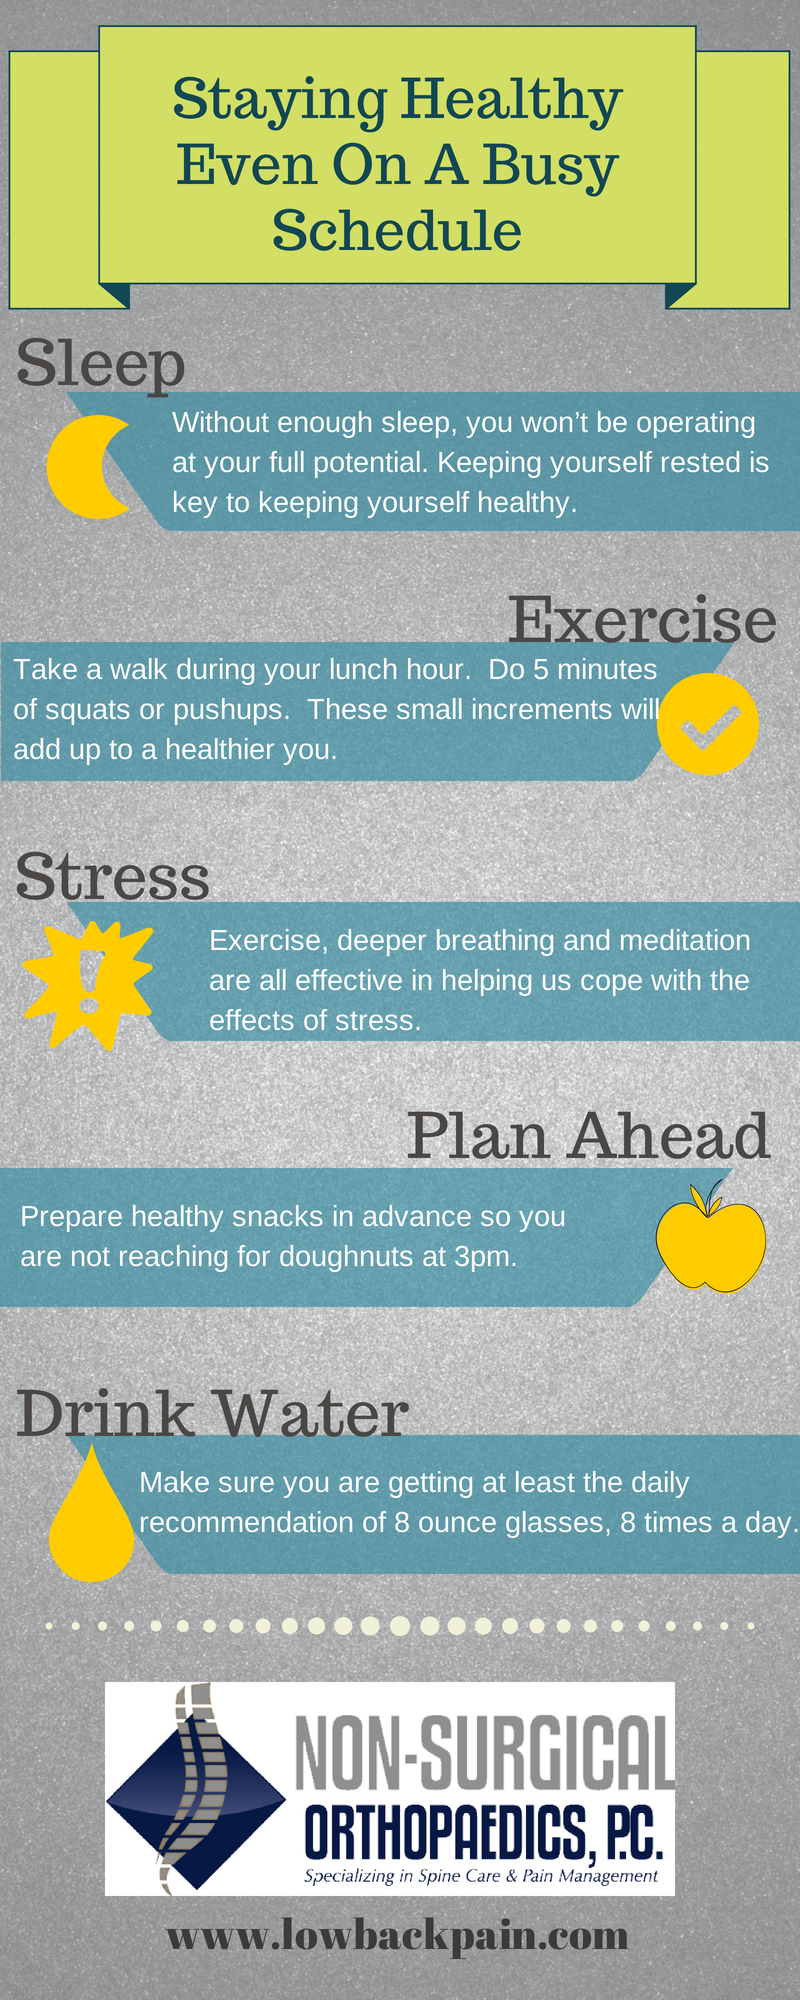 Staying Healthy on Busy Schedule-1